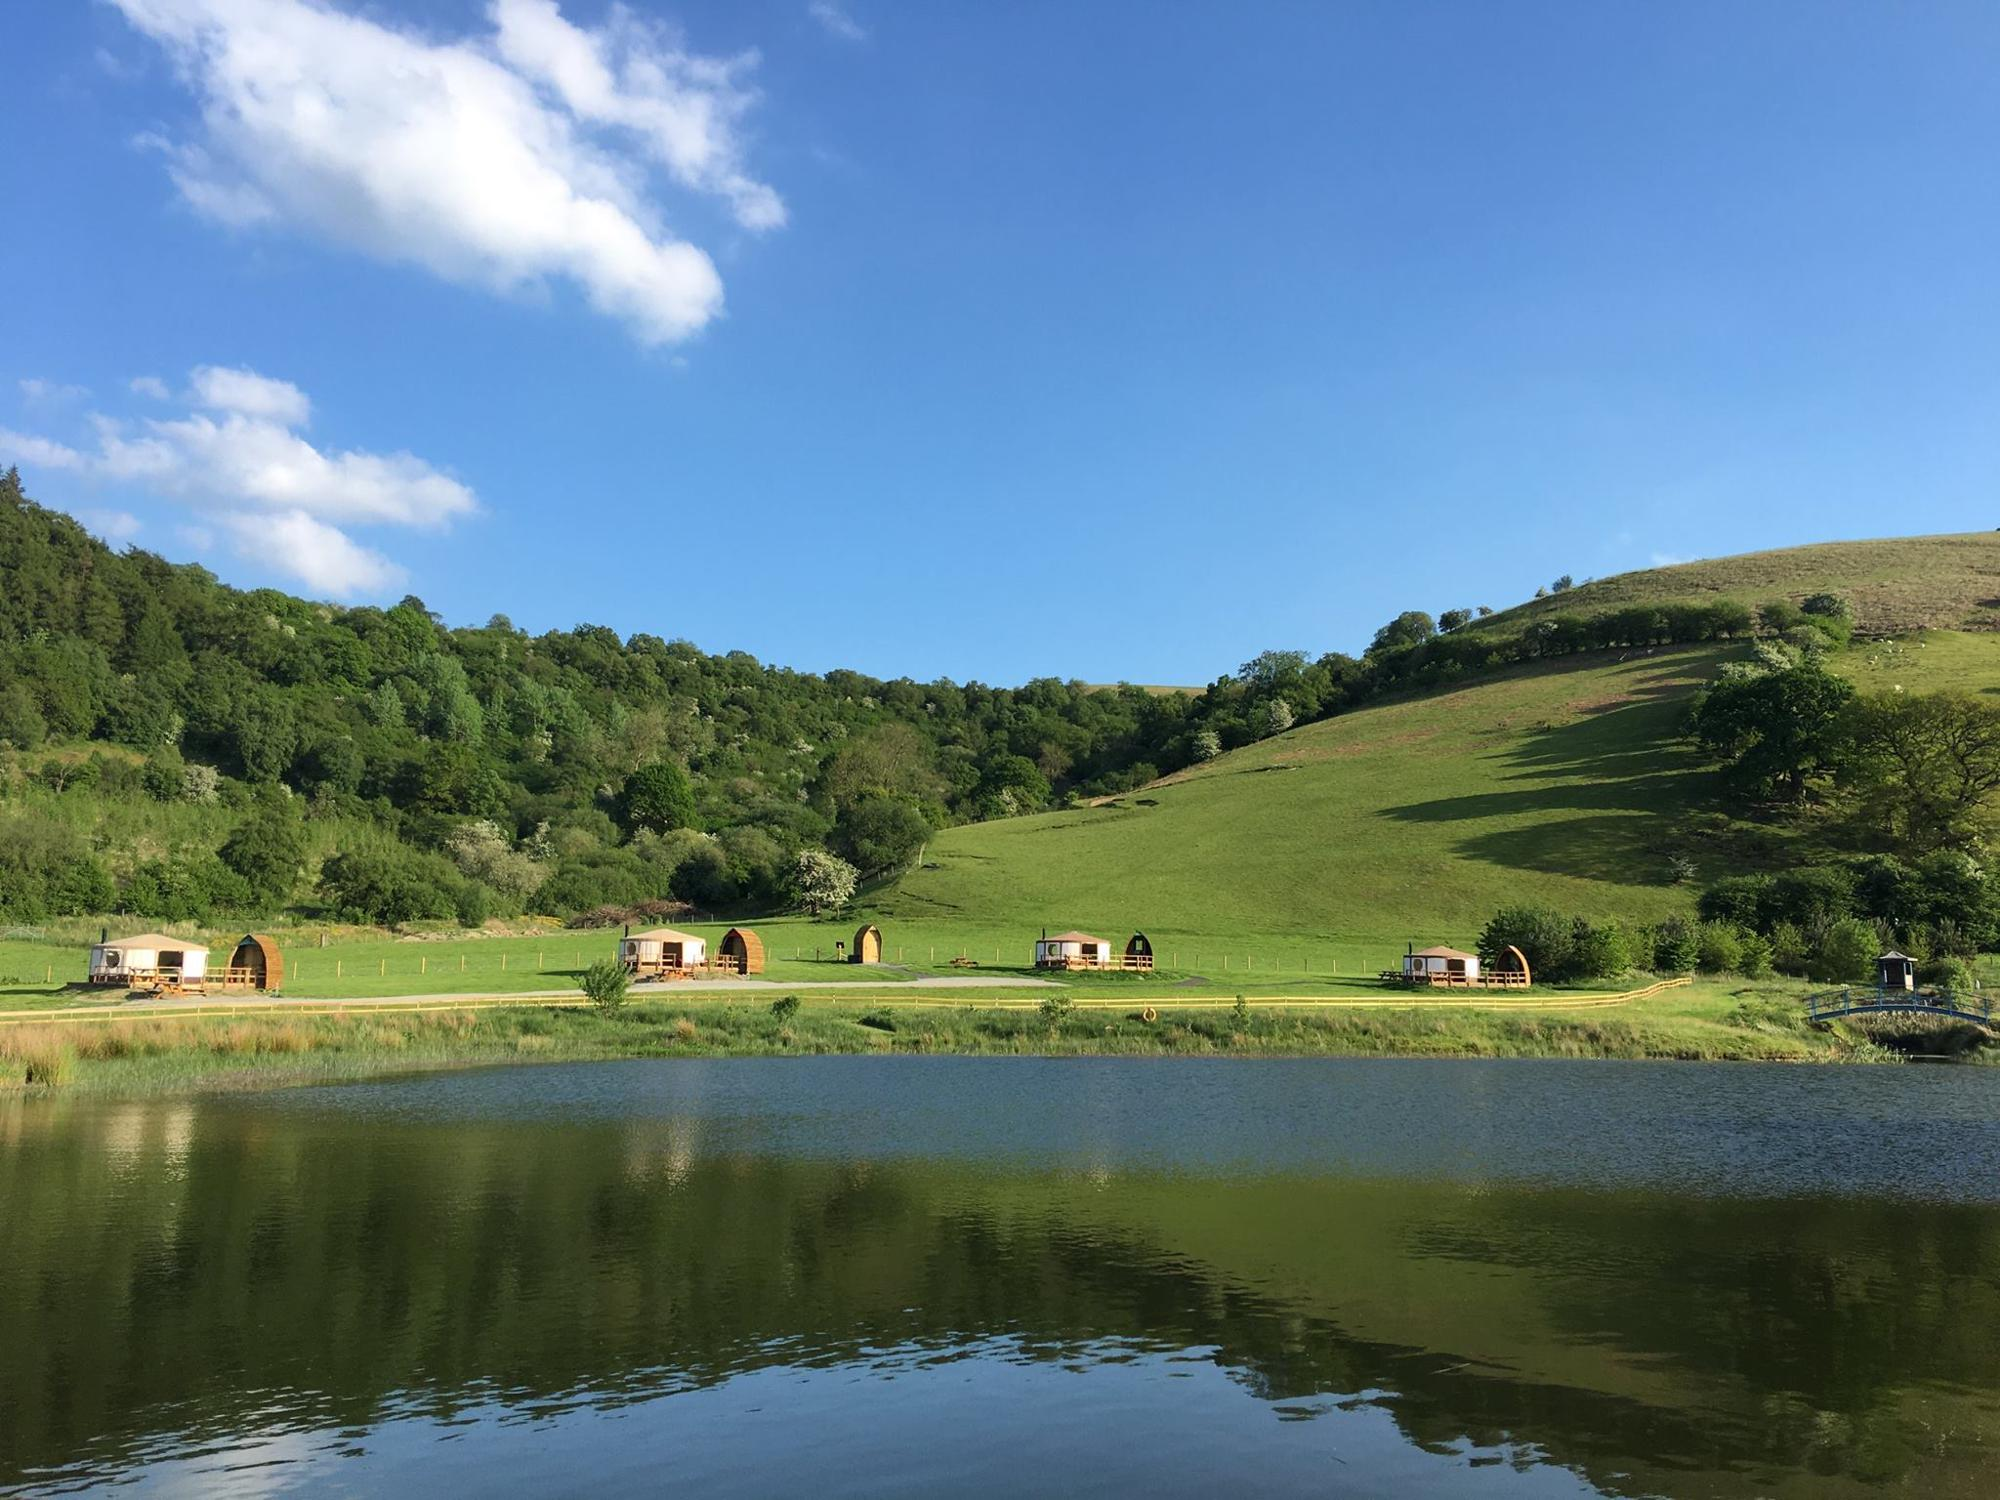 Hotels, Cottages, B&Bs & Glamping in Powys